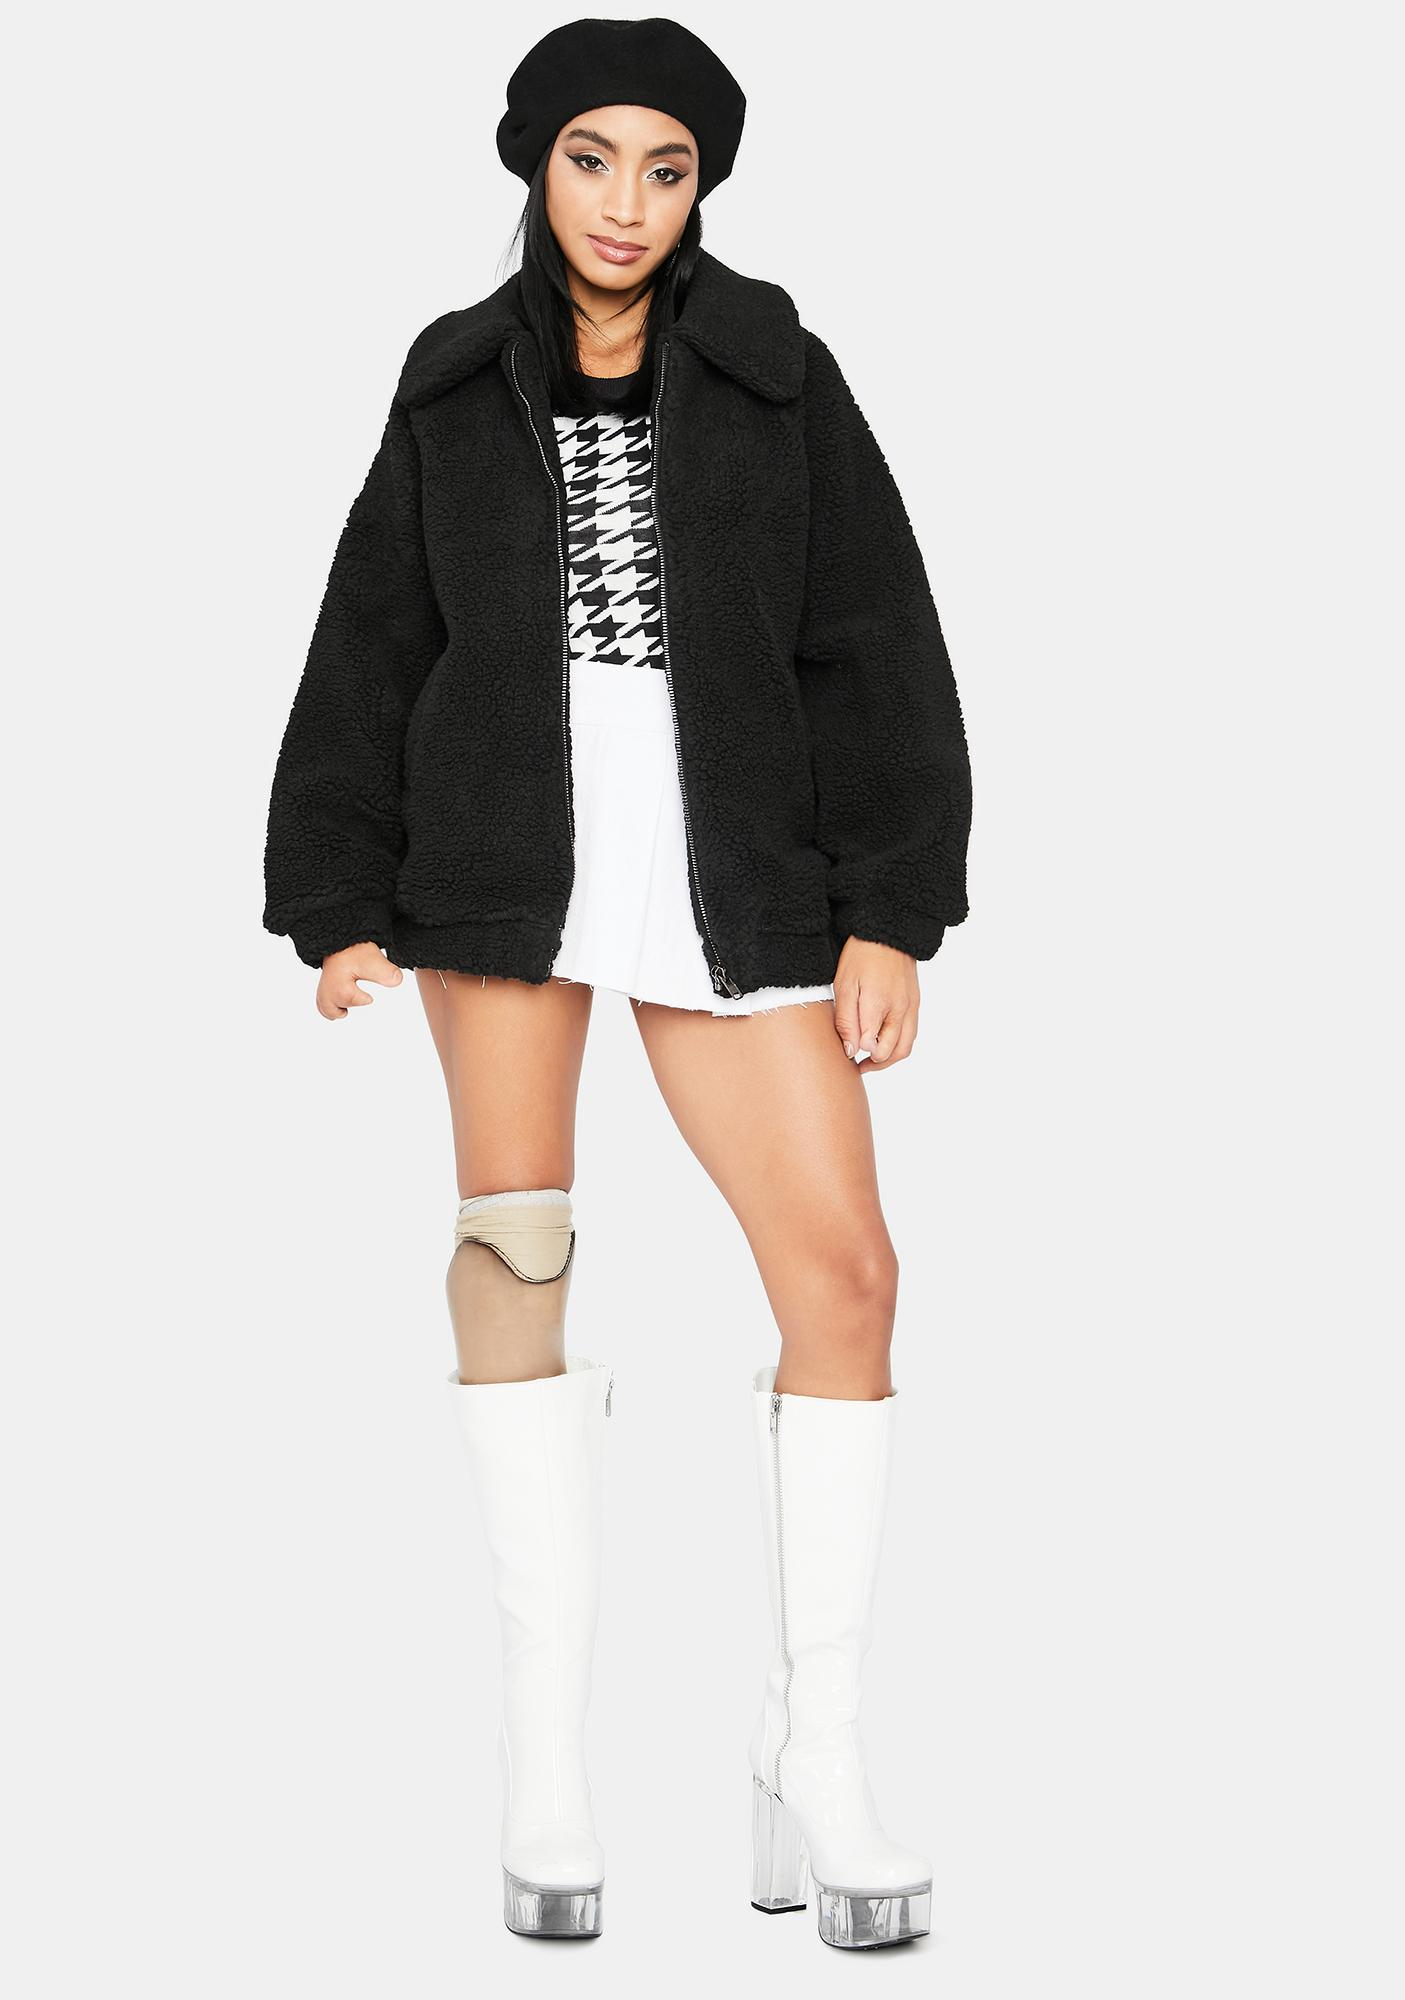 Only Legends Teddy Jackets